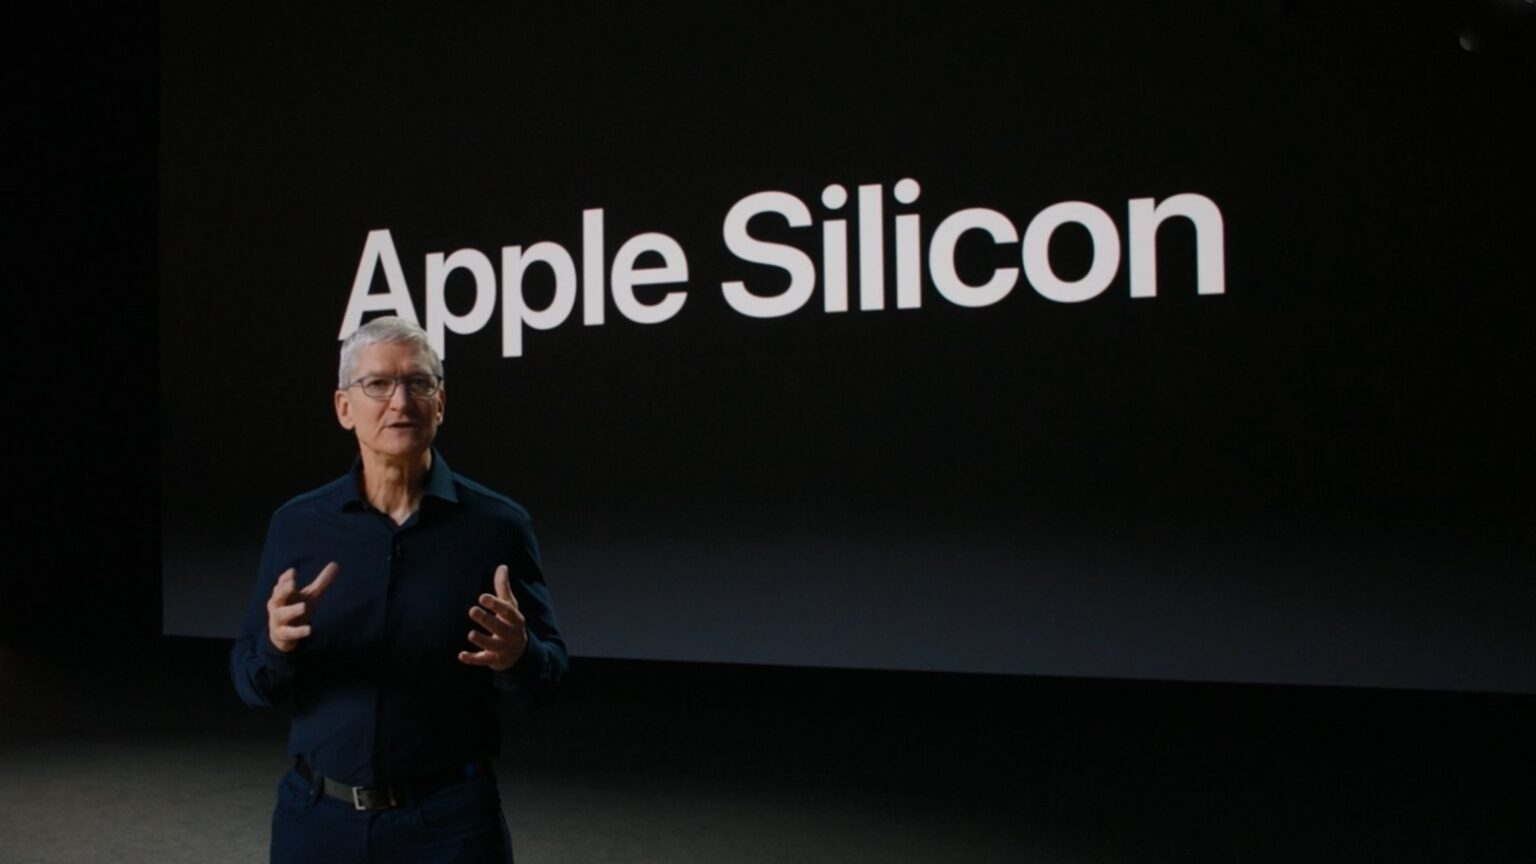 Apple silicon will power future Mac desktops and laptops